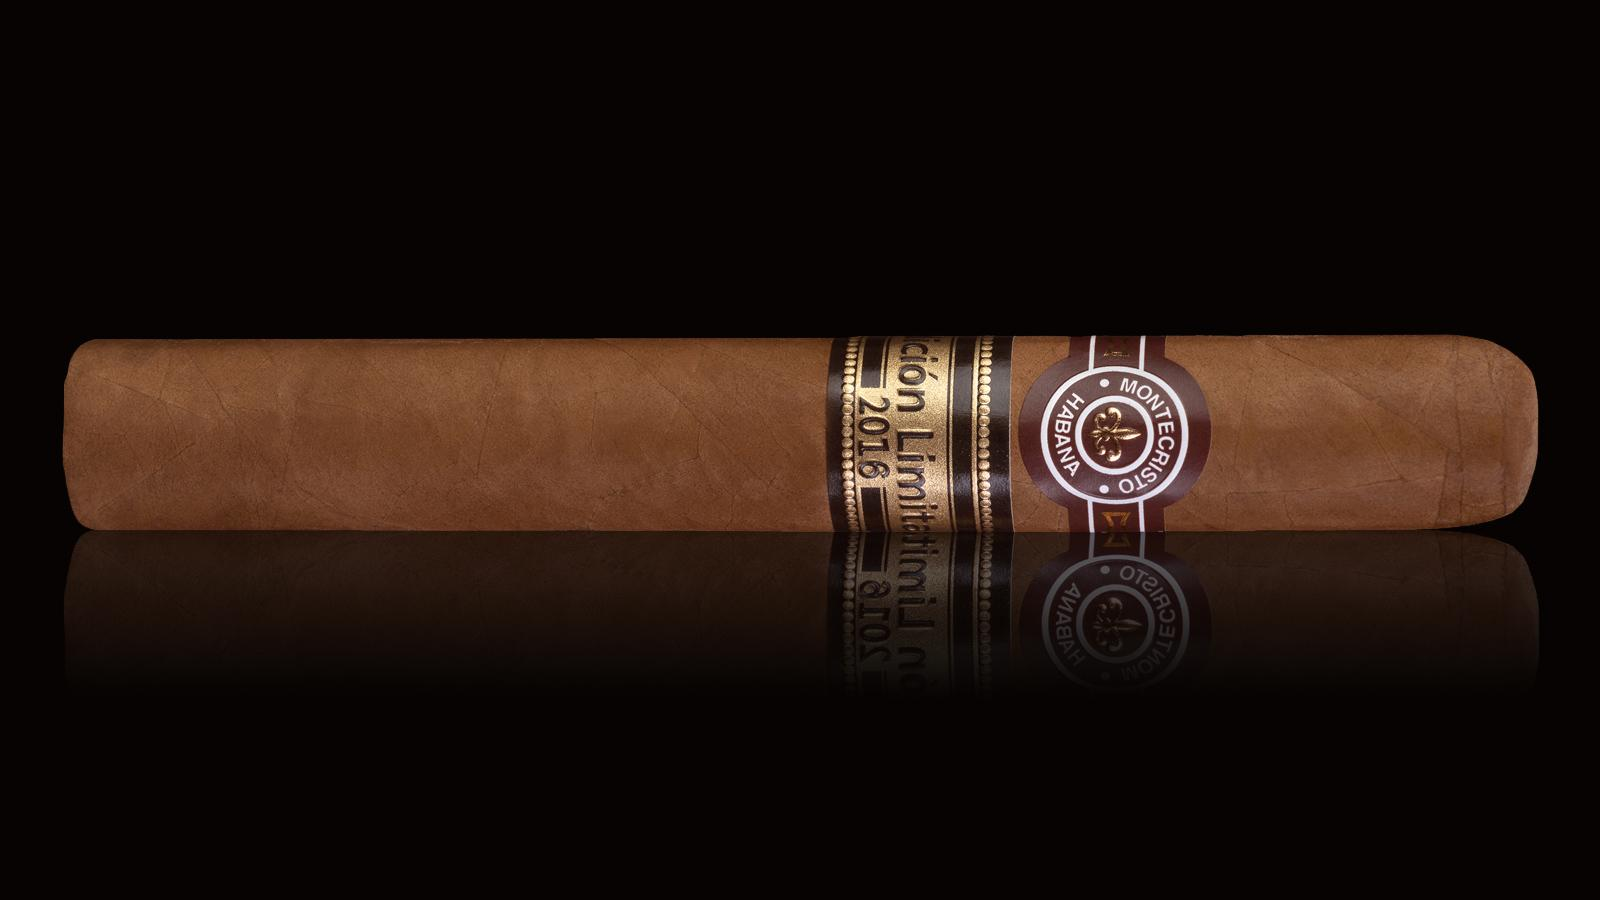 Cubans Announce Release Of Last Limitada For 2016